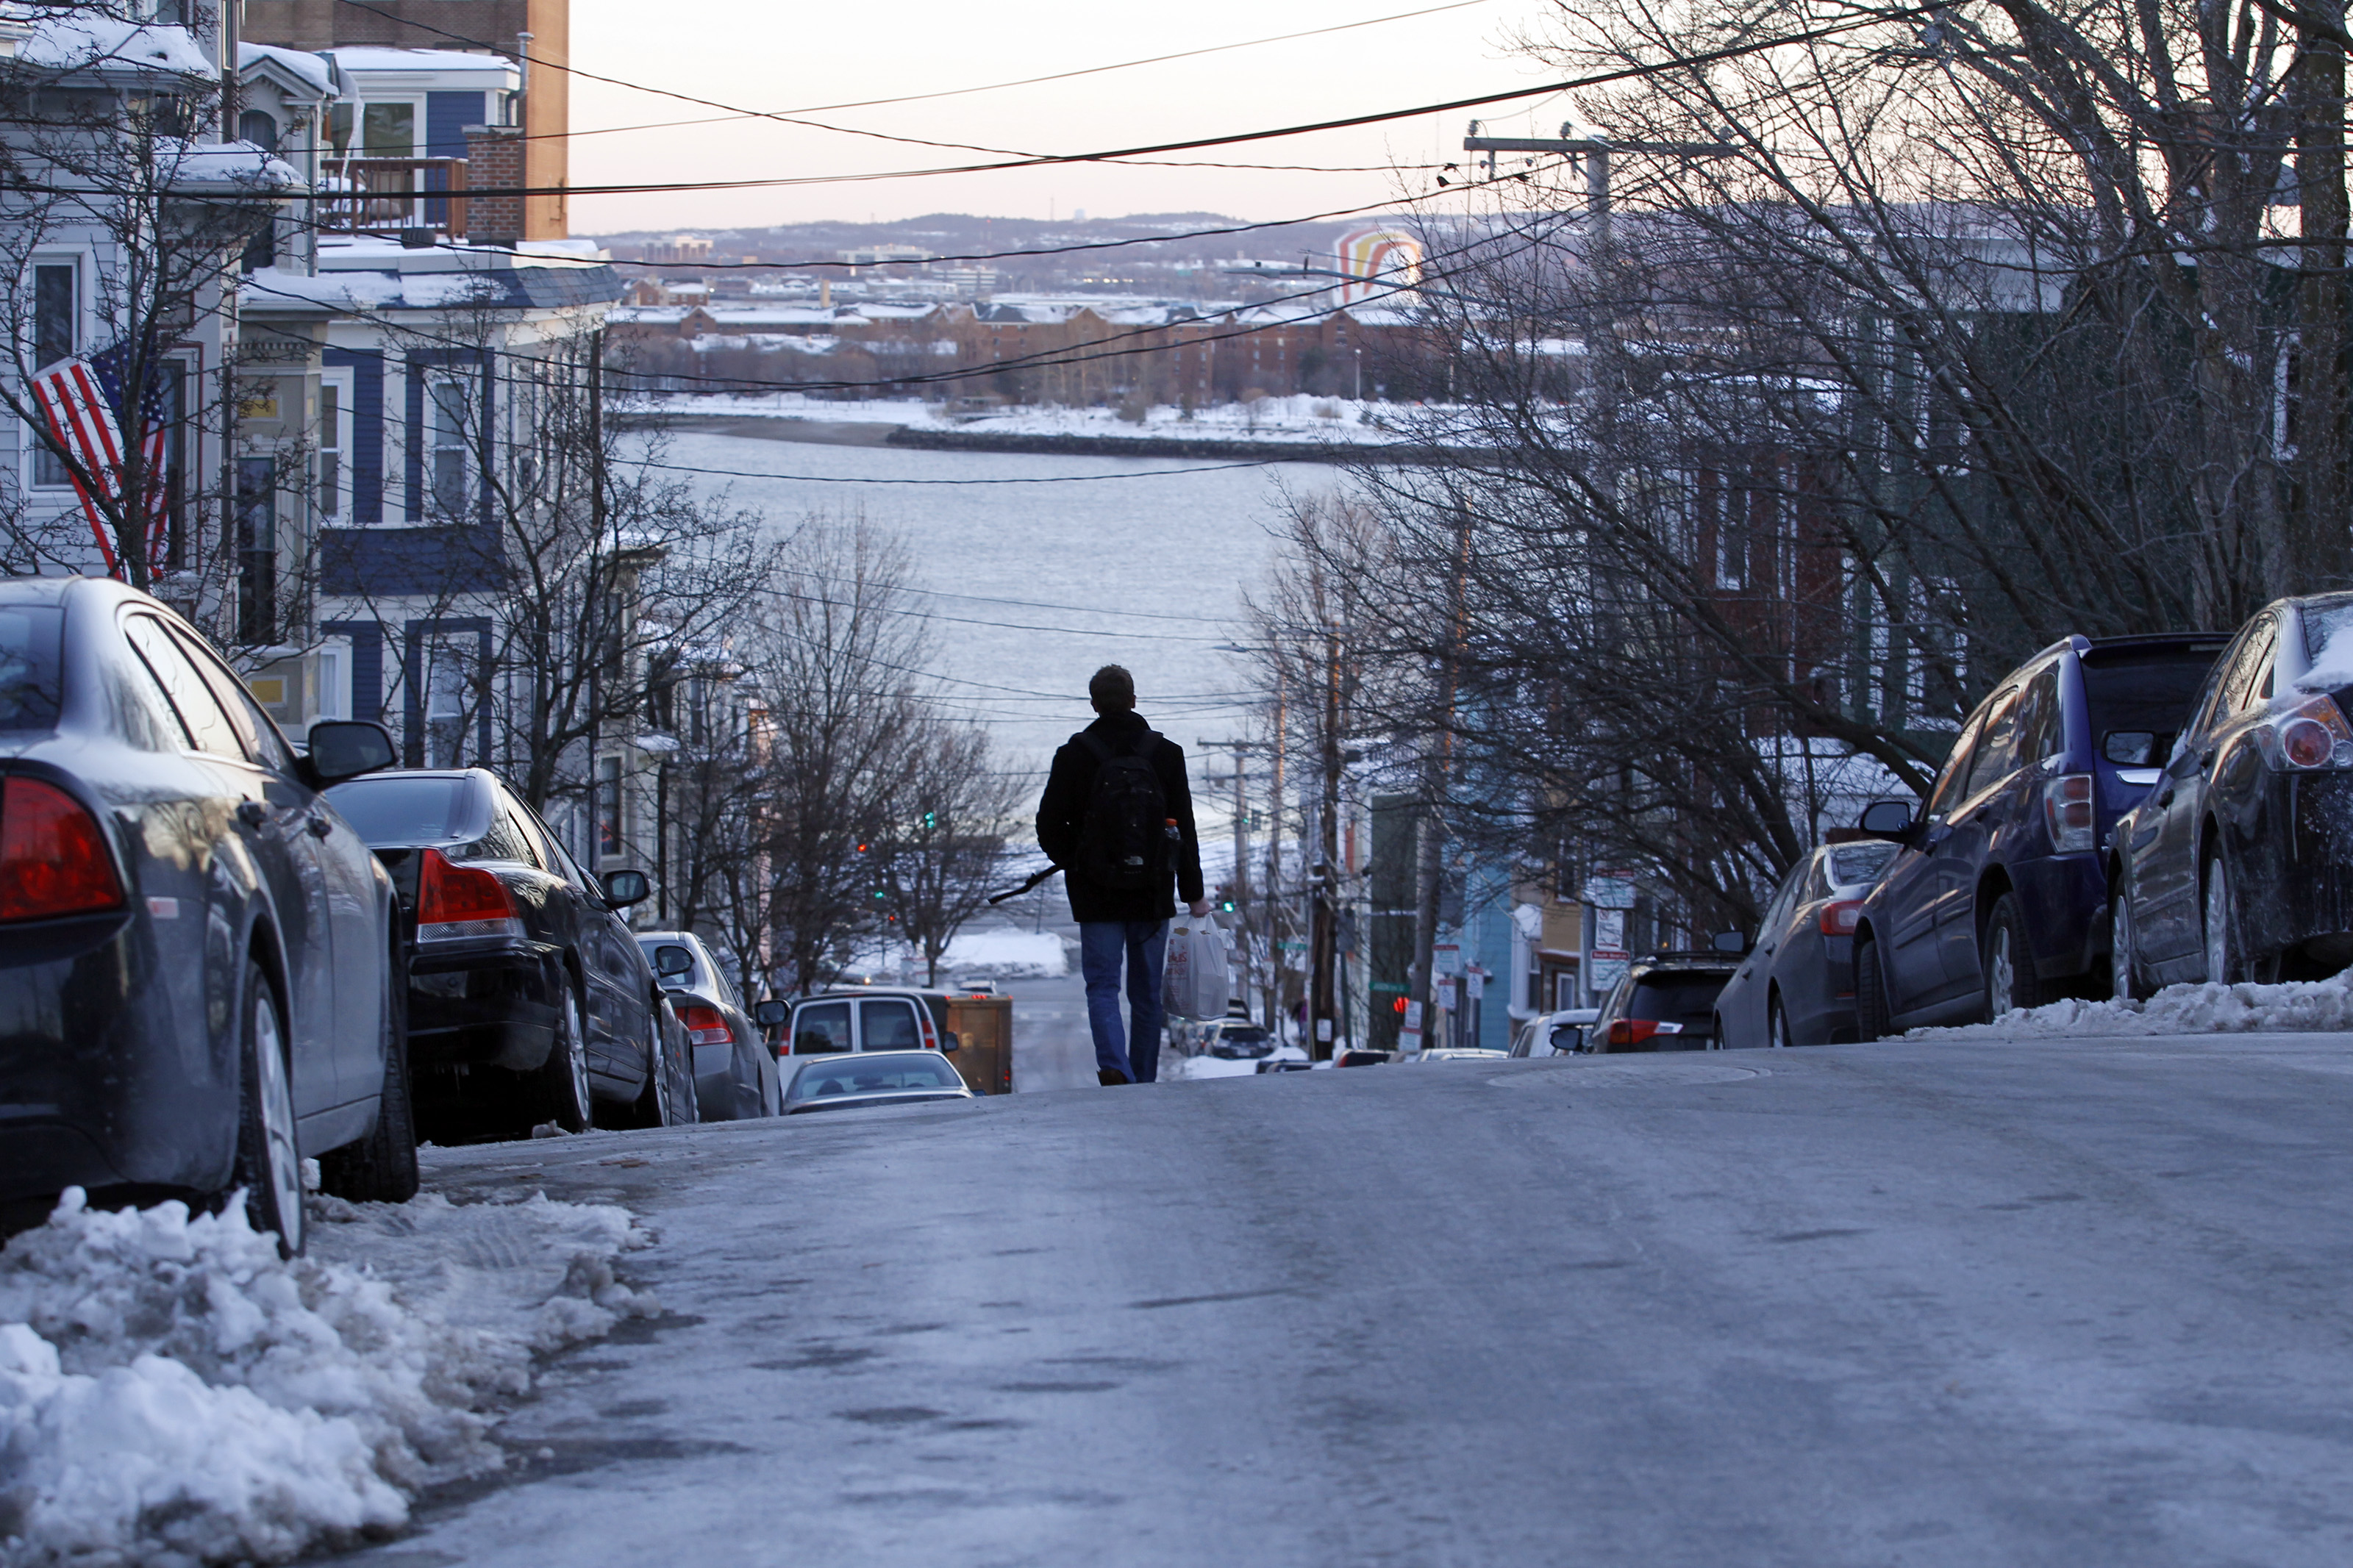 Snow-piled Boston sidewalks an uphill struggle - The Boston